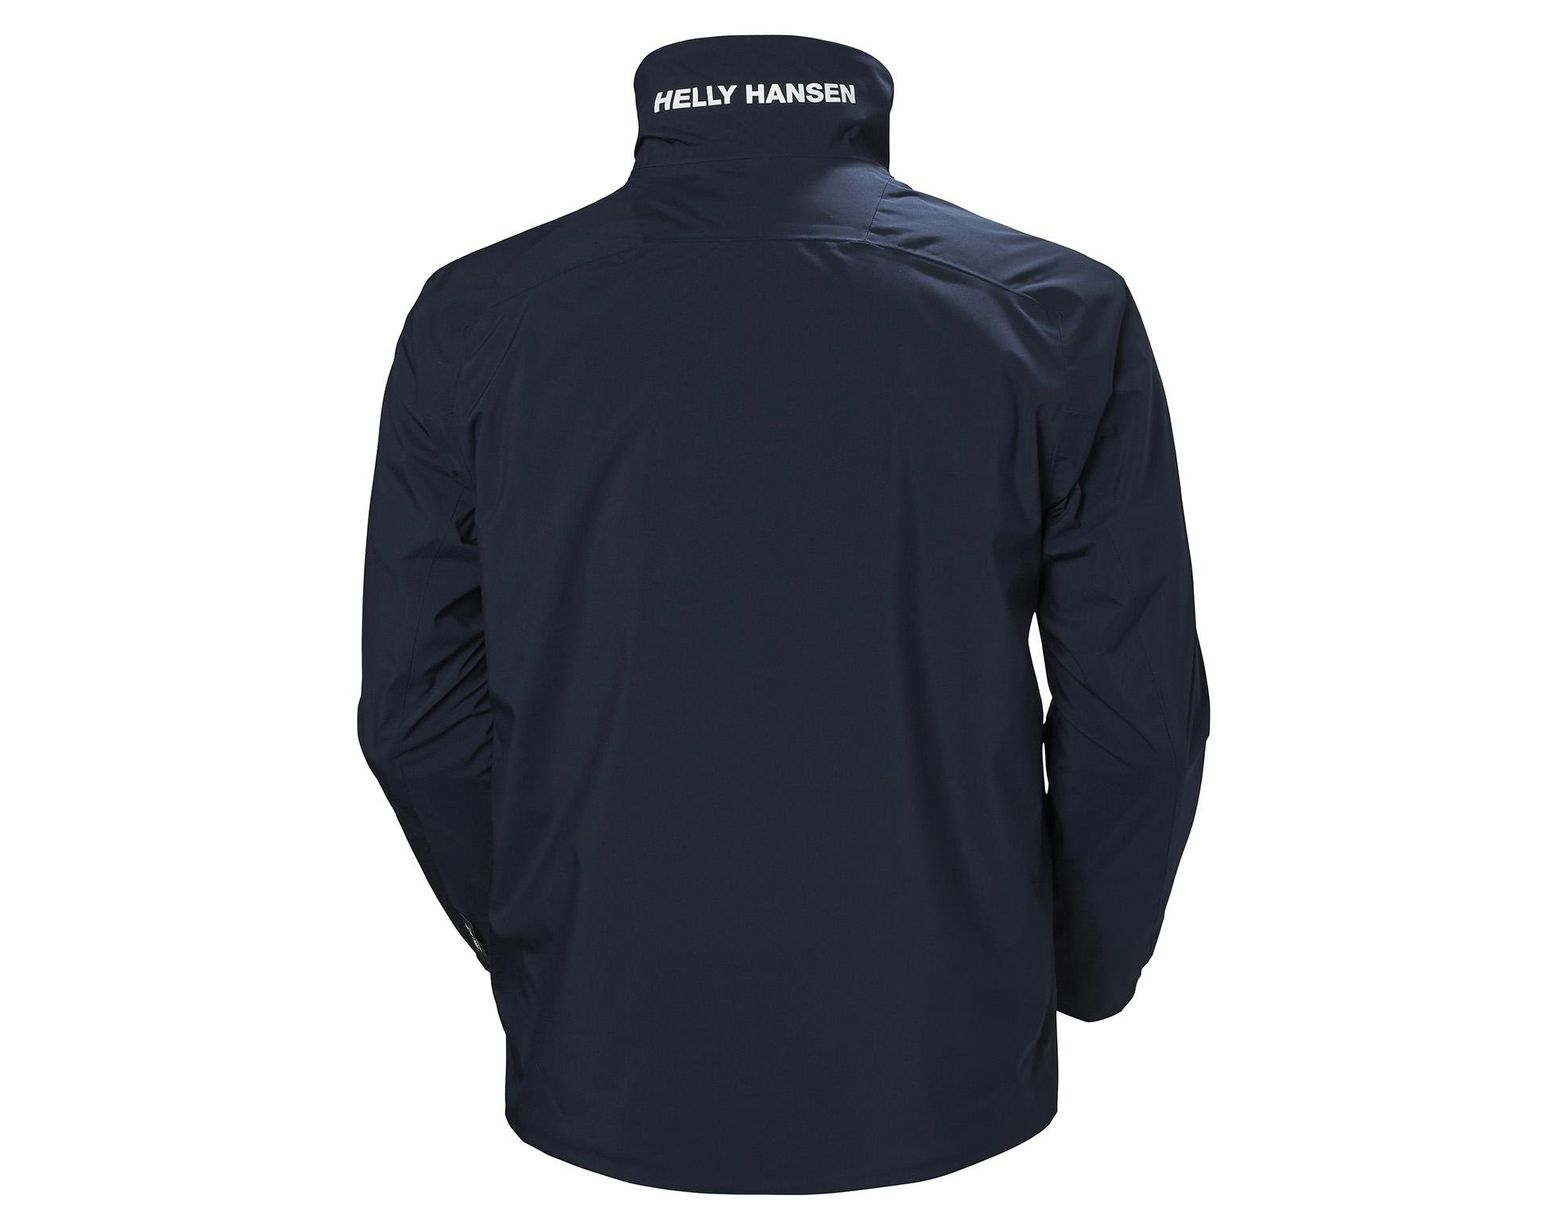 b80ea58438 Helly Hansen Hp Racing Midlayer Jacket in Blue for Men - Save 25% - Lyst